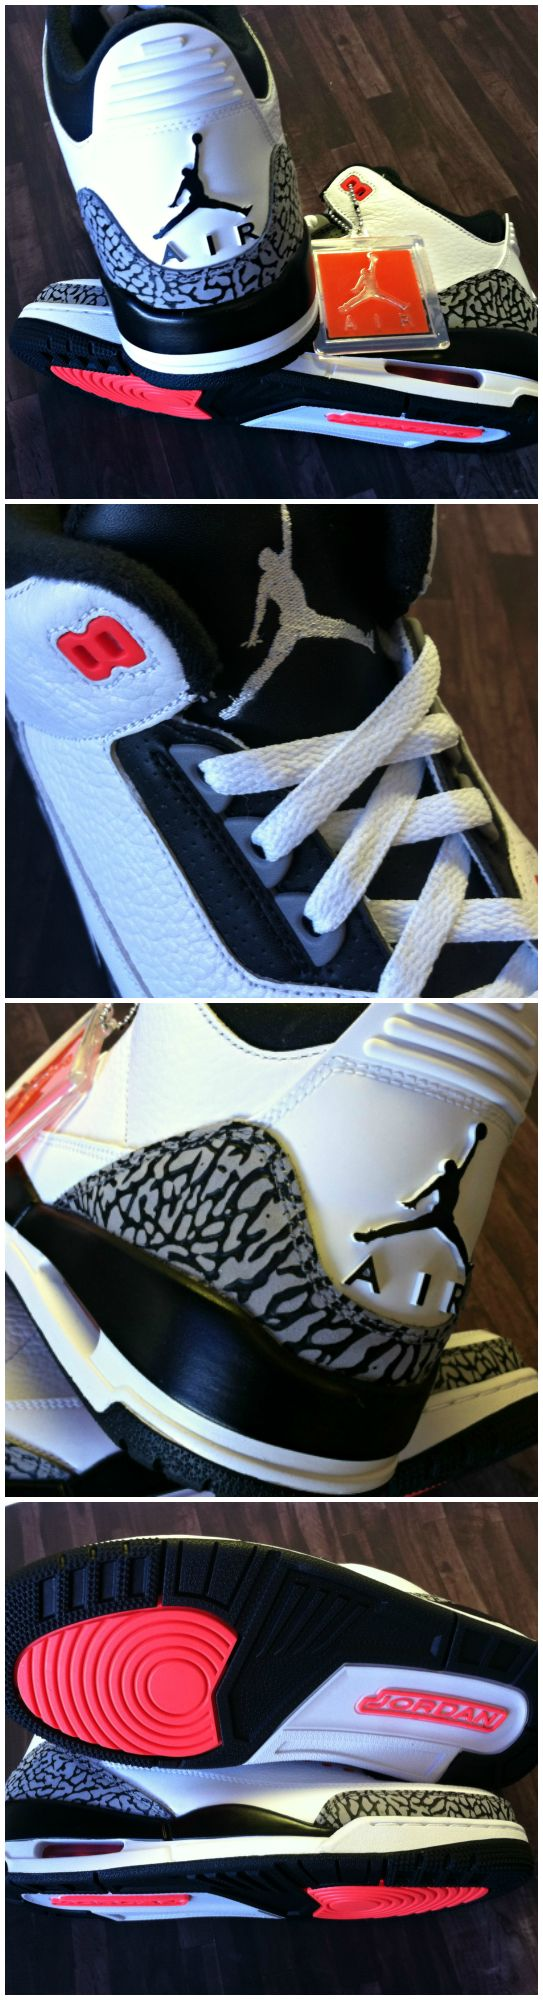 """Pin now, cop Saturday. Get the details on the Jordan Retro 3 """"Infrared 23"""" before it drops."""